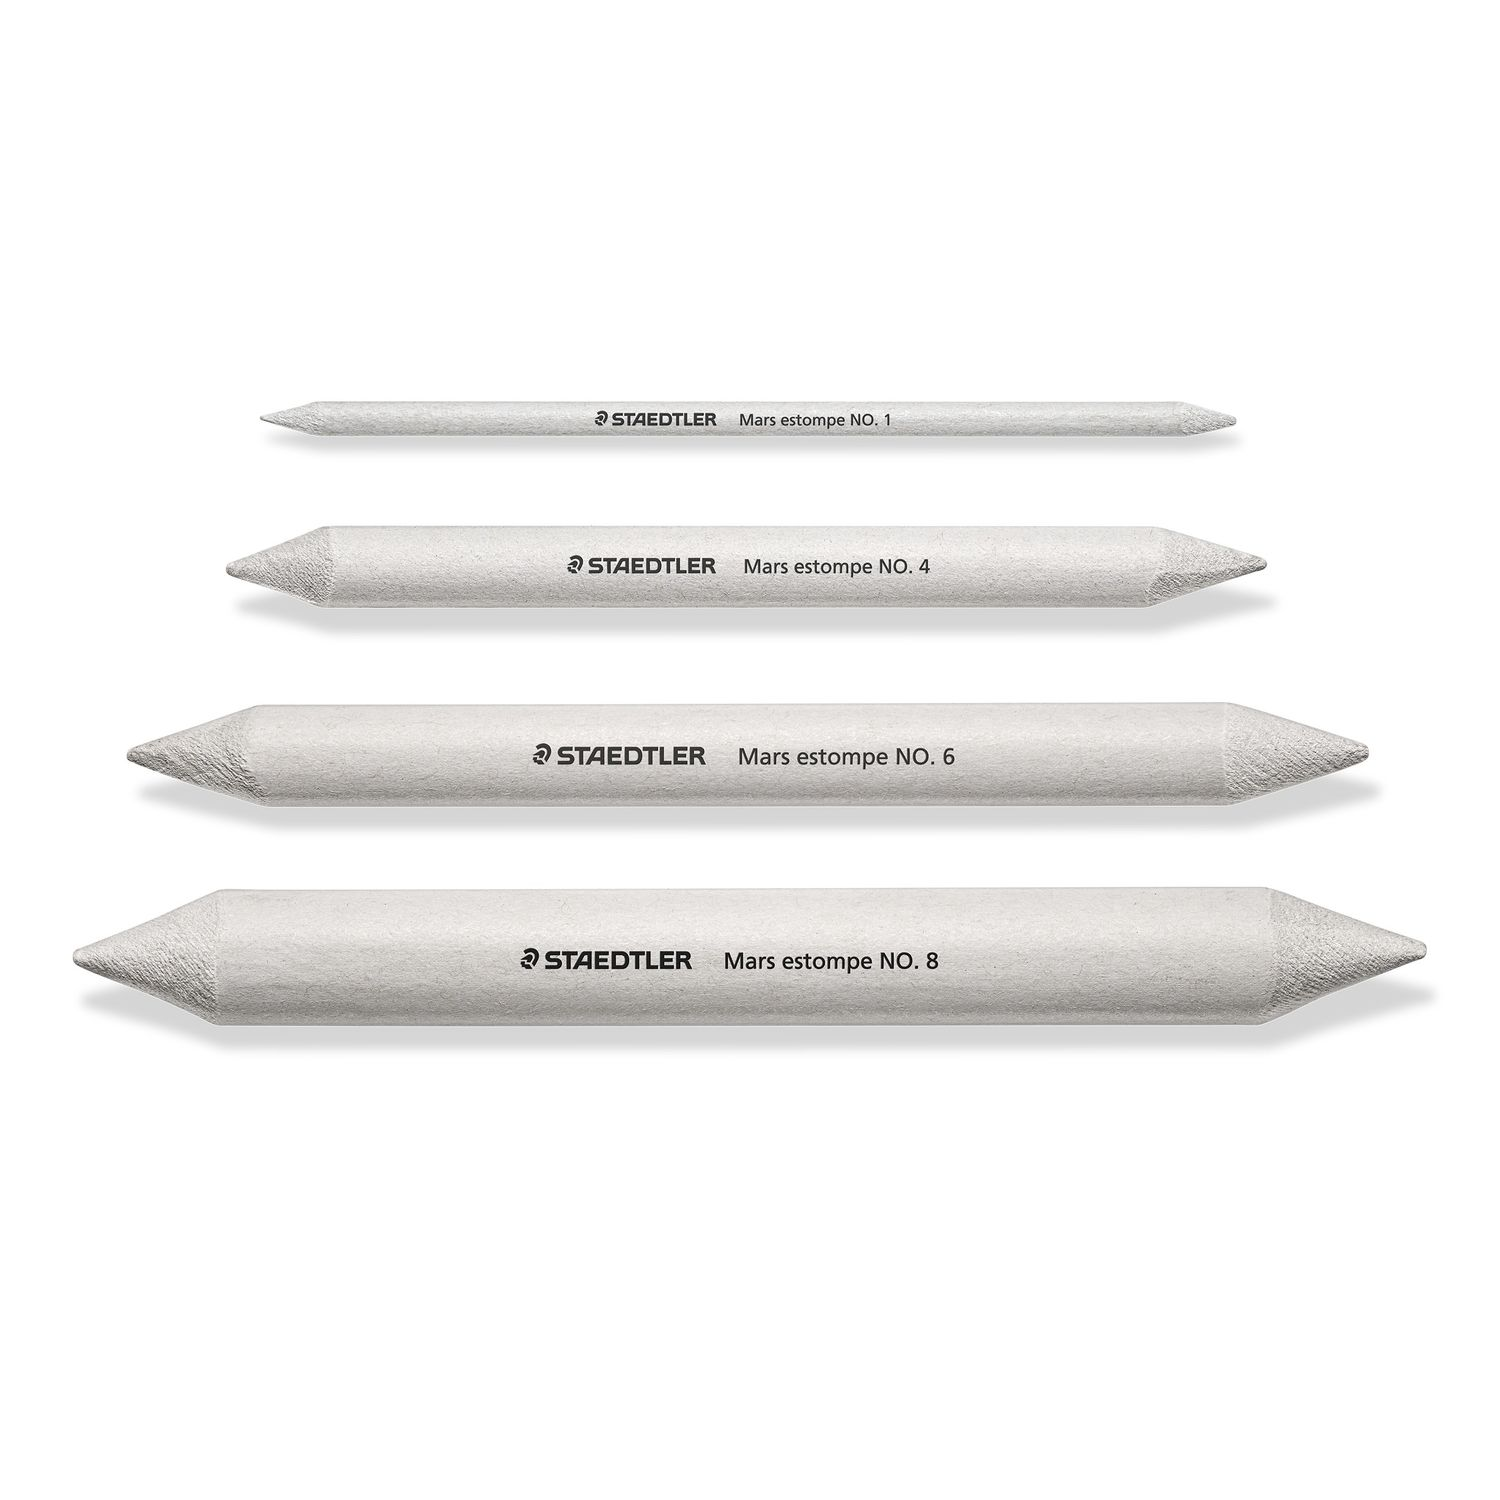 STAEDTLER Blending Stumps 5426 in 4 Different Sizes no. 1/4/6/8